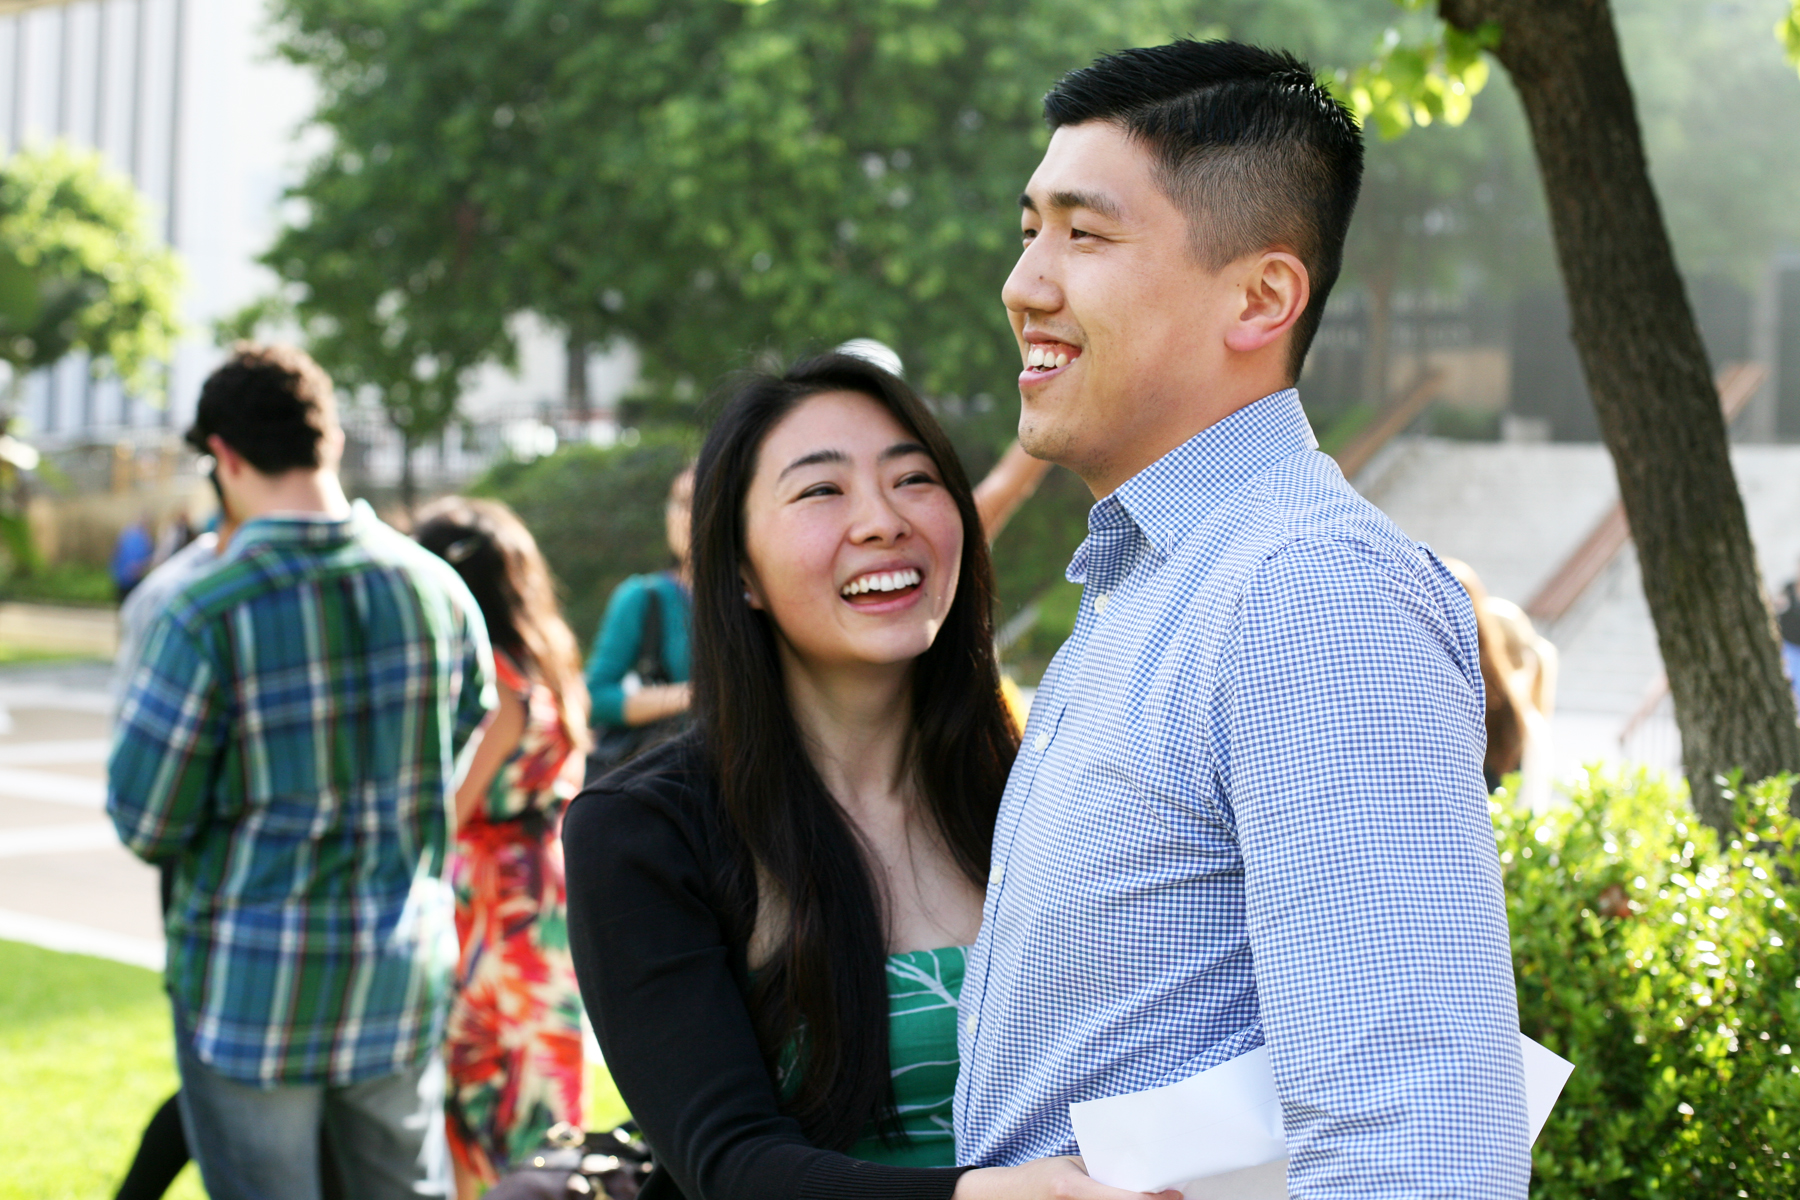 Medical students Lynn Ngai and Phil Wu, who met as first-year students and are planning to marry after graduation, celebrate: They're both headed to Stanford University Medical Center. (USC Photo/Les Dunseith)